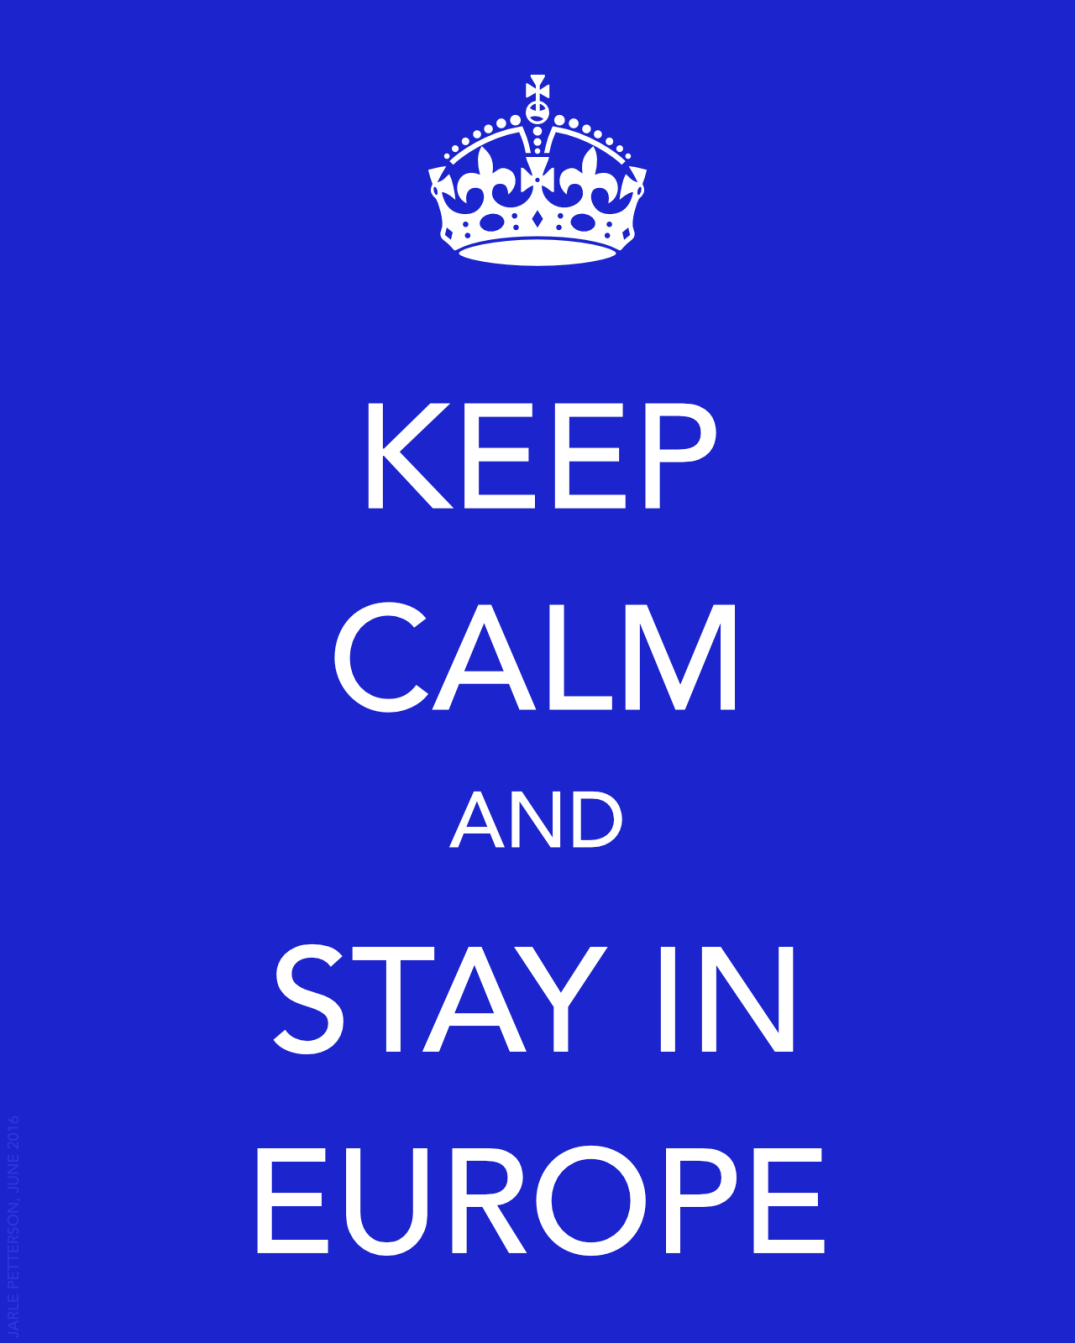 Keep calm and stay in the EU. Blogger's own illustration.